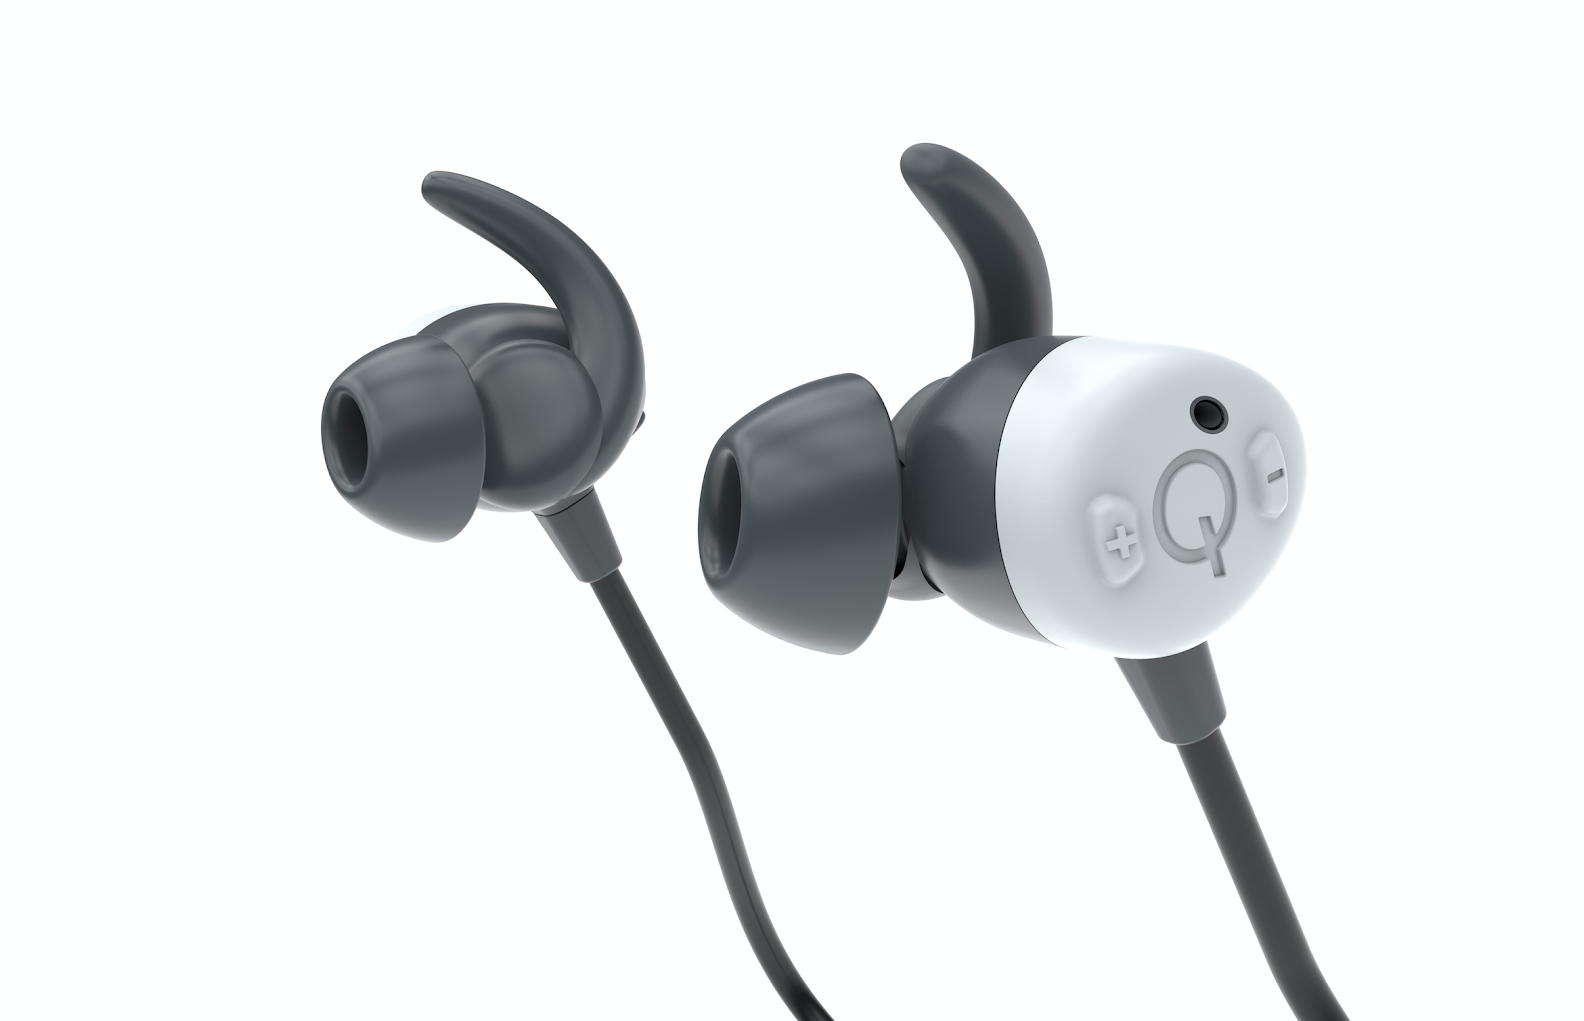 Qualcomm Smart Headset